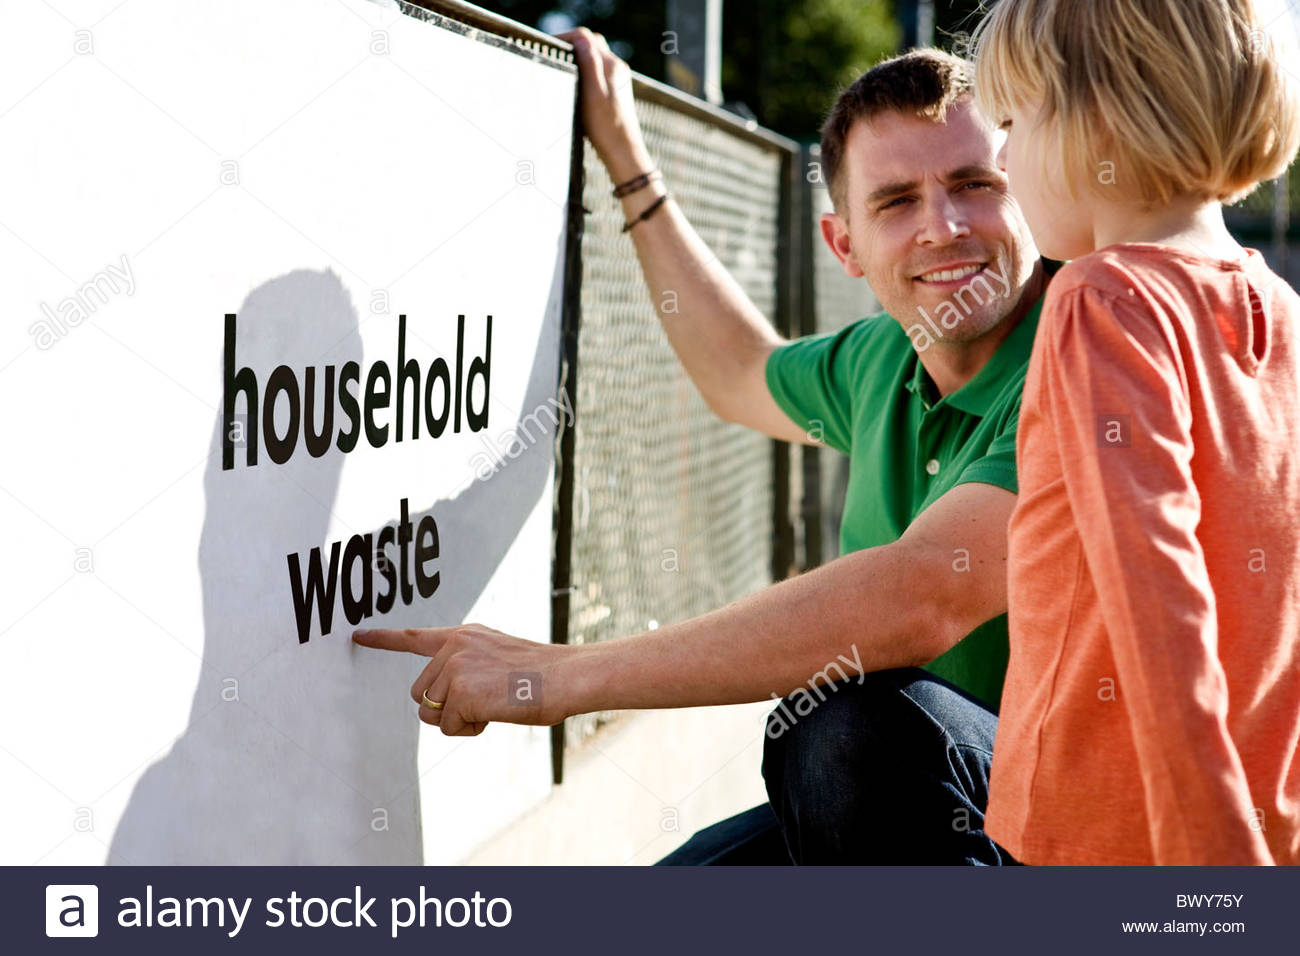 A father teaching his daughter about recycling - Stock Image